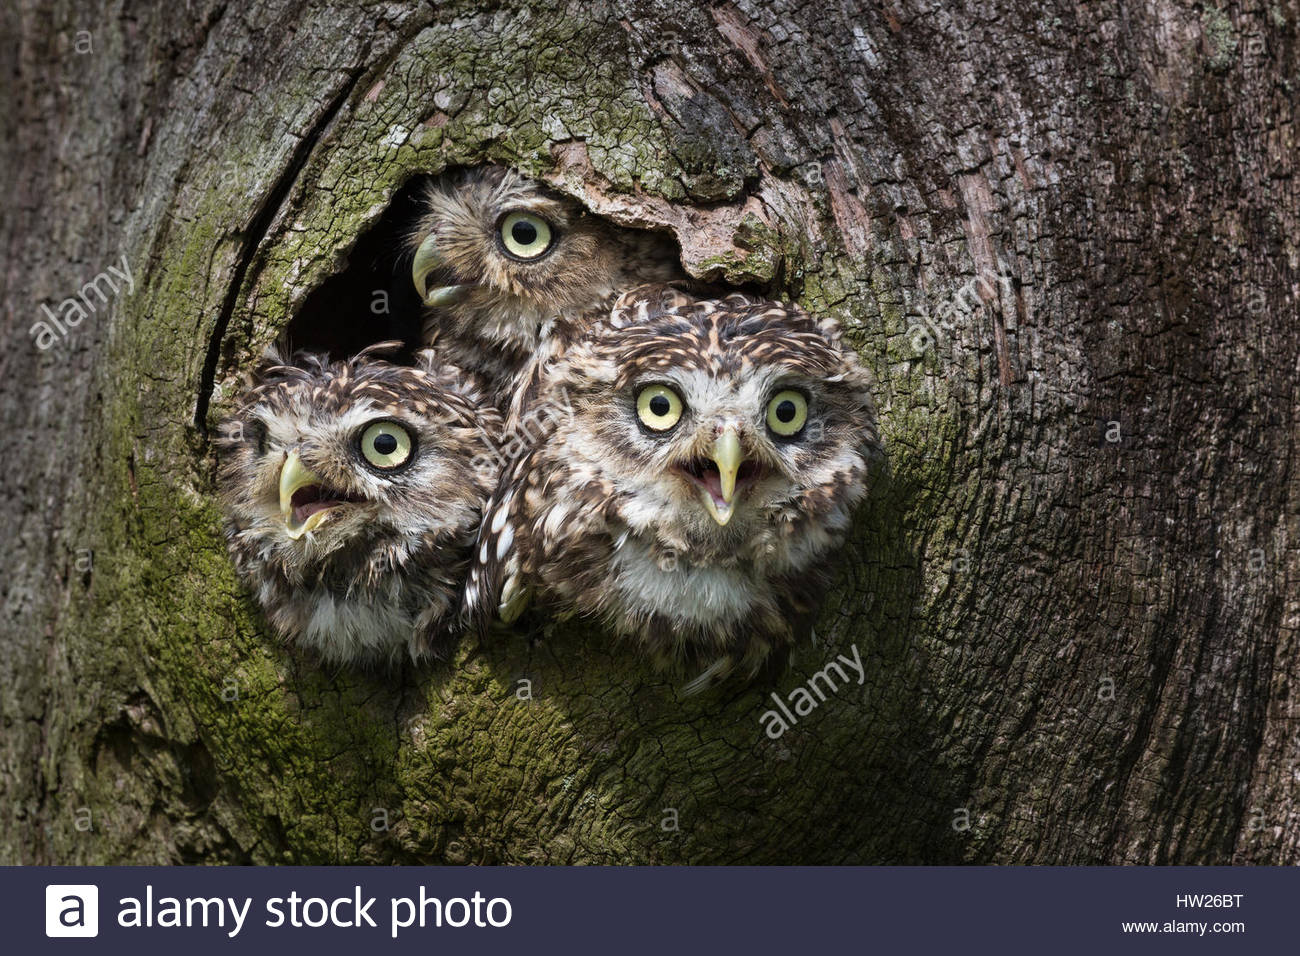 Little owls (Athene noctua), captive, UK, August 2016 - Stock Image